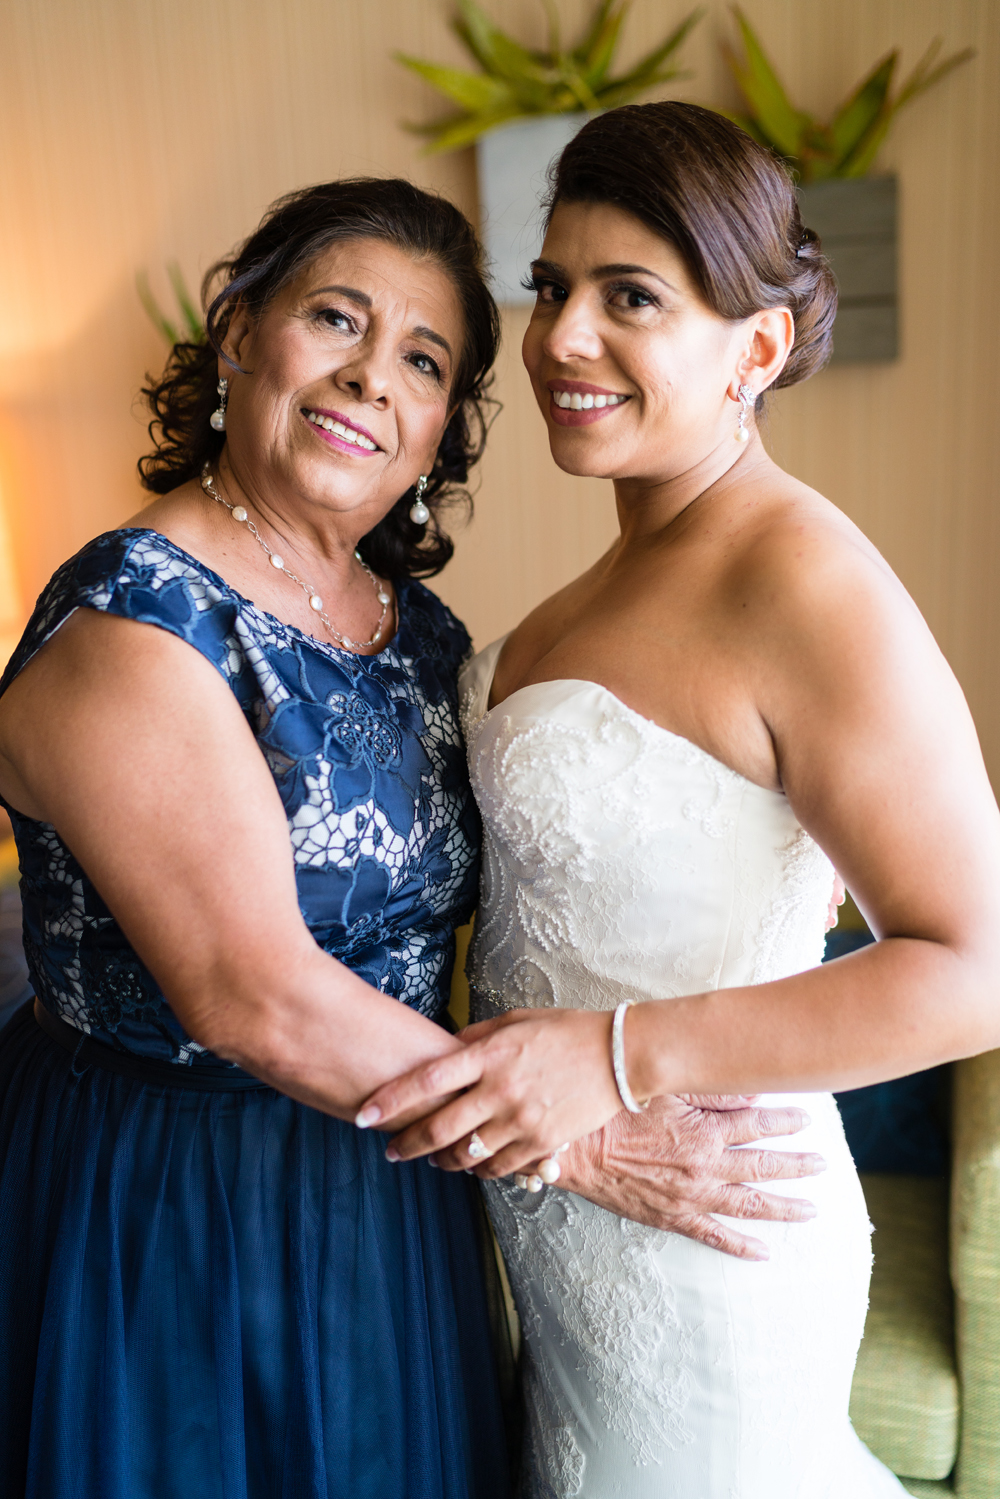 fff98-lively-navy-yellow-harbor-wedding-bride-and-mom.jpg